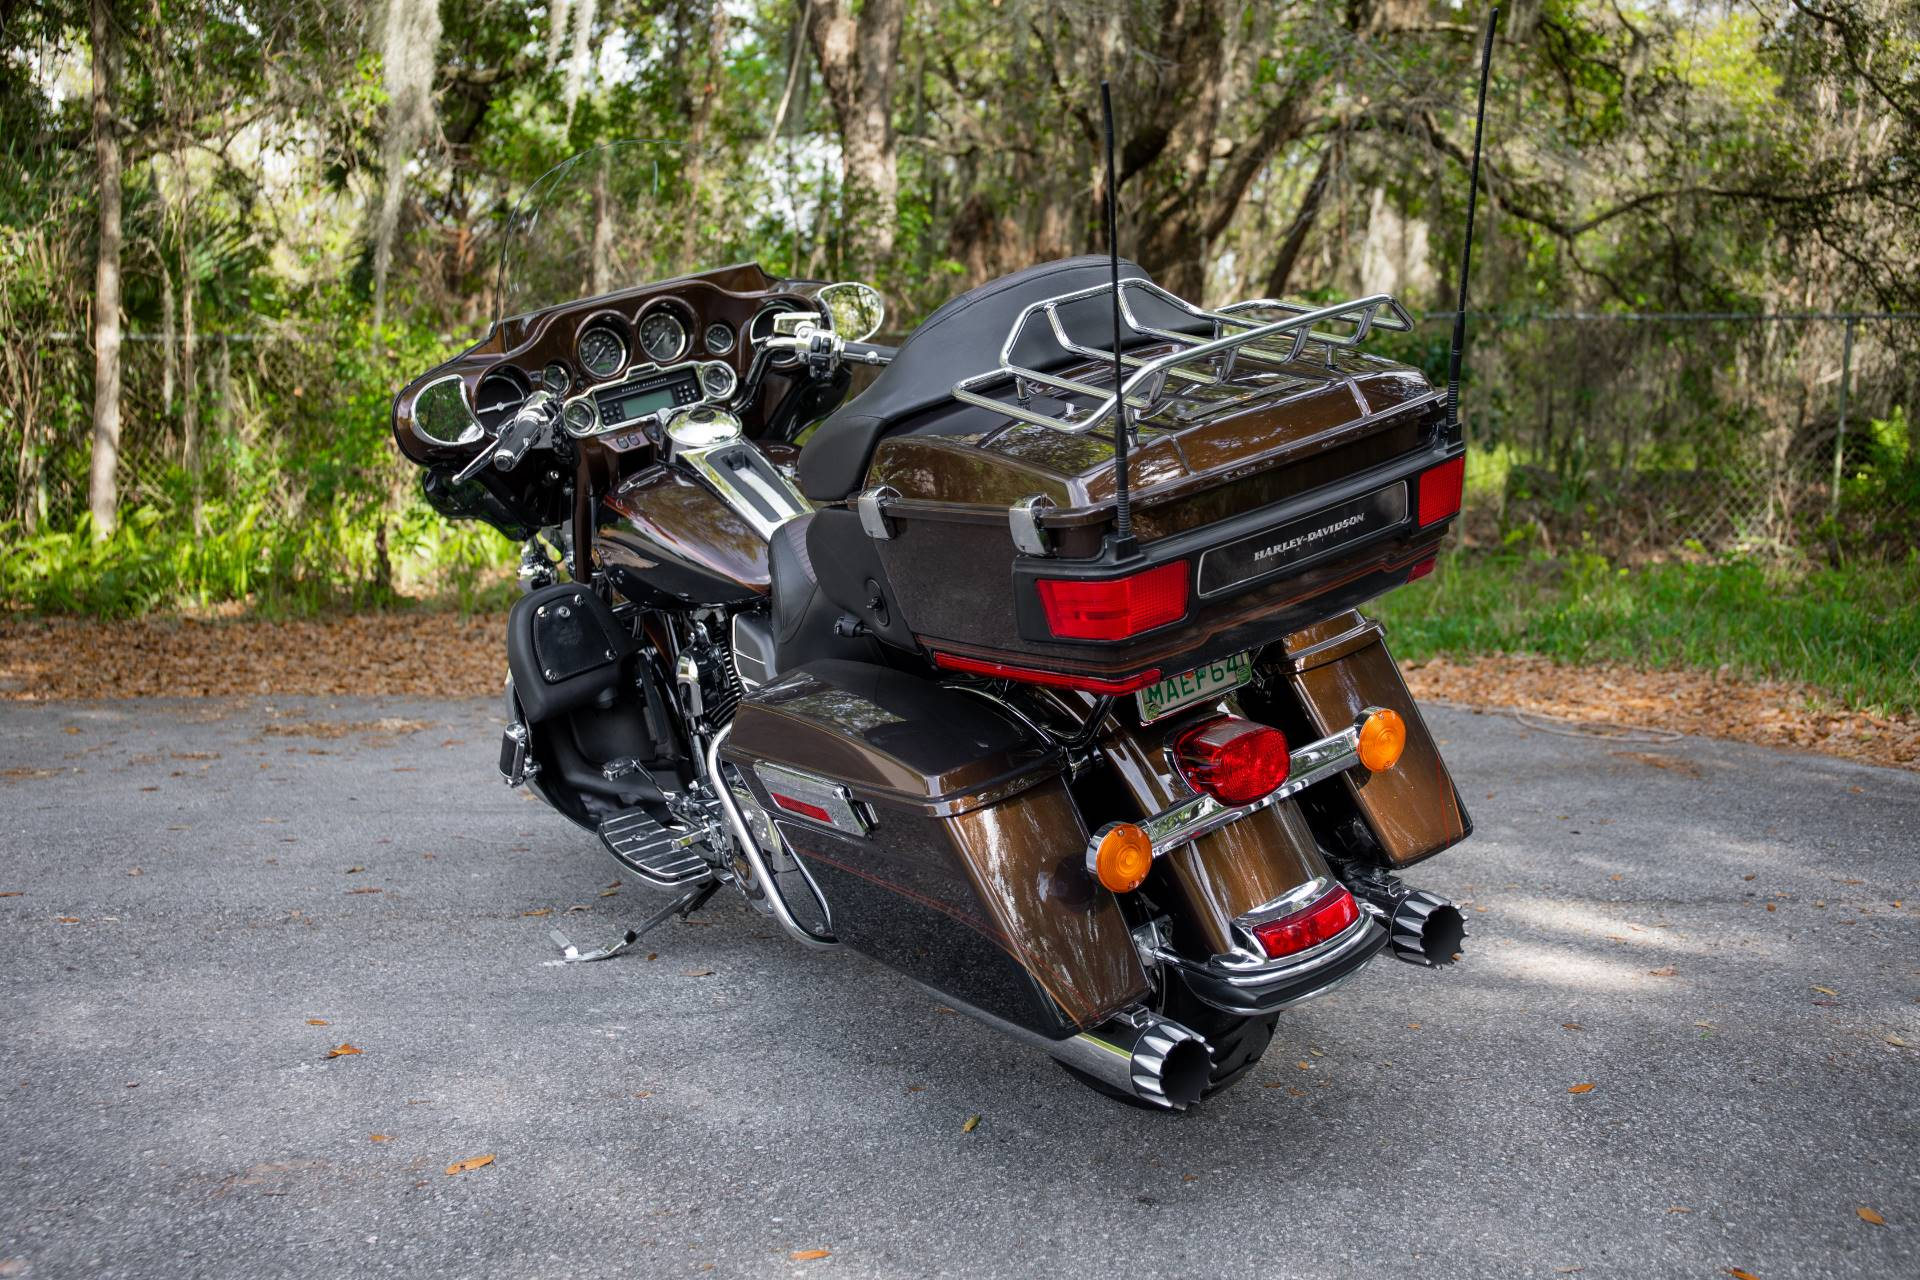 2013 Harley-Davidson Electra Glide® Ultra Limited 110th Anniversary Edition in Lakeland, Florida - Photo 25